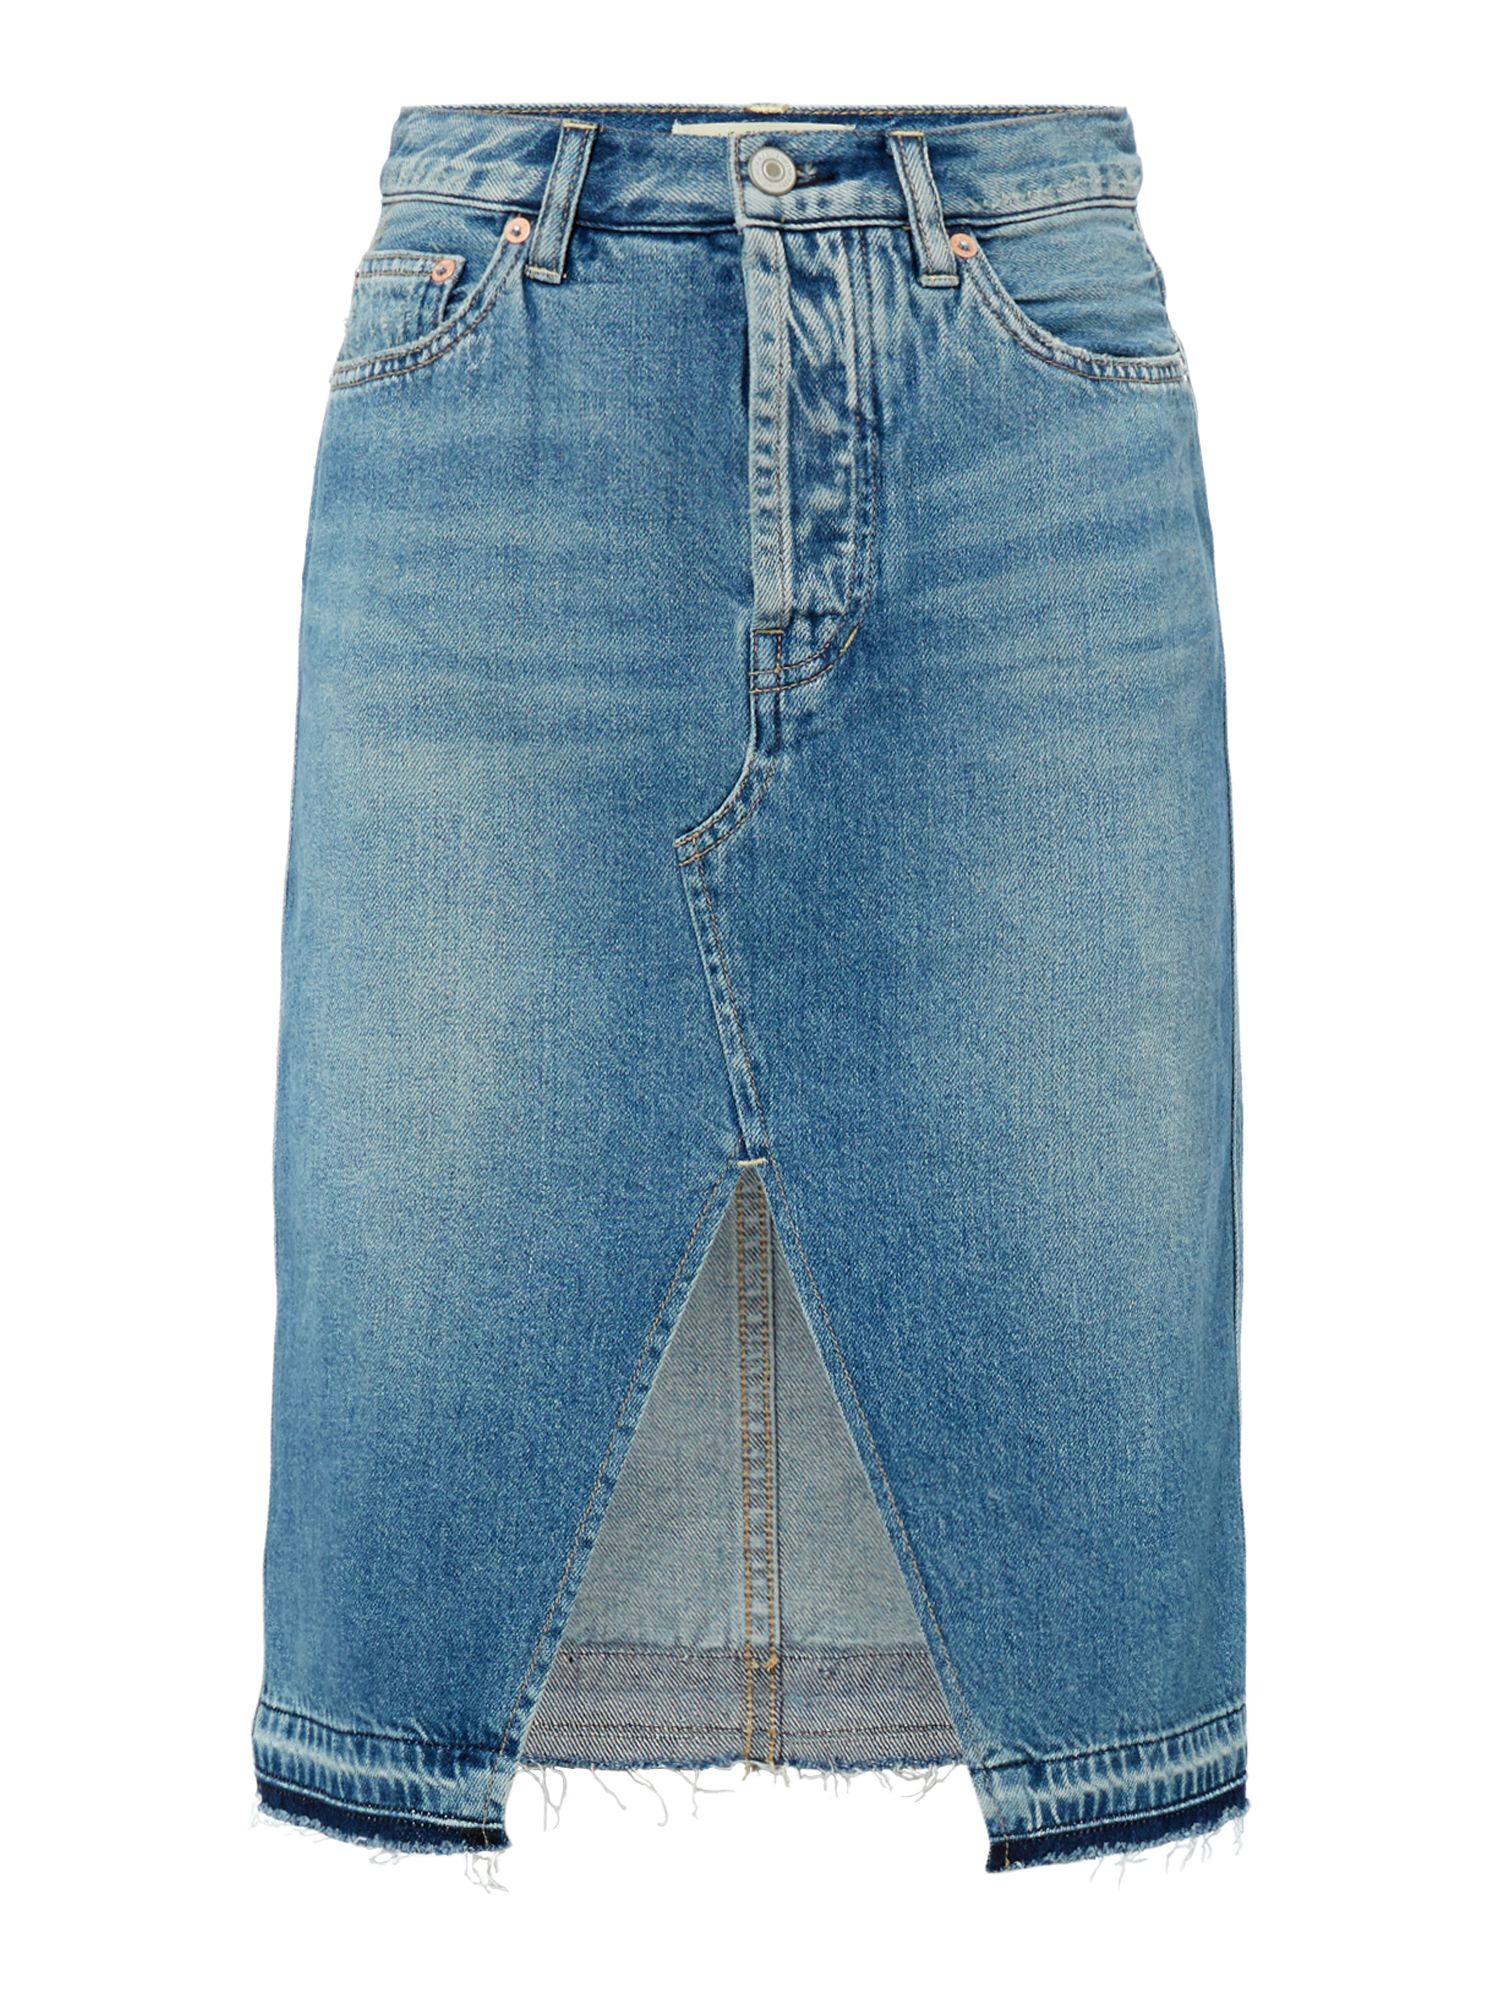 Free People Knee Length Denim Midi Skirt, Blue